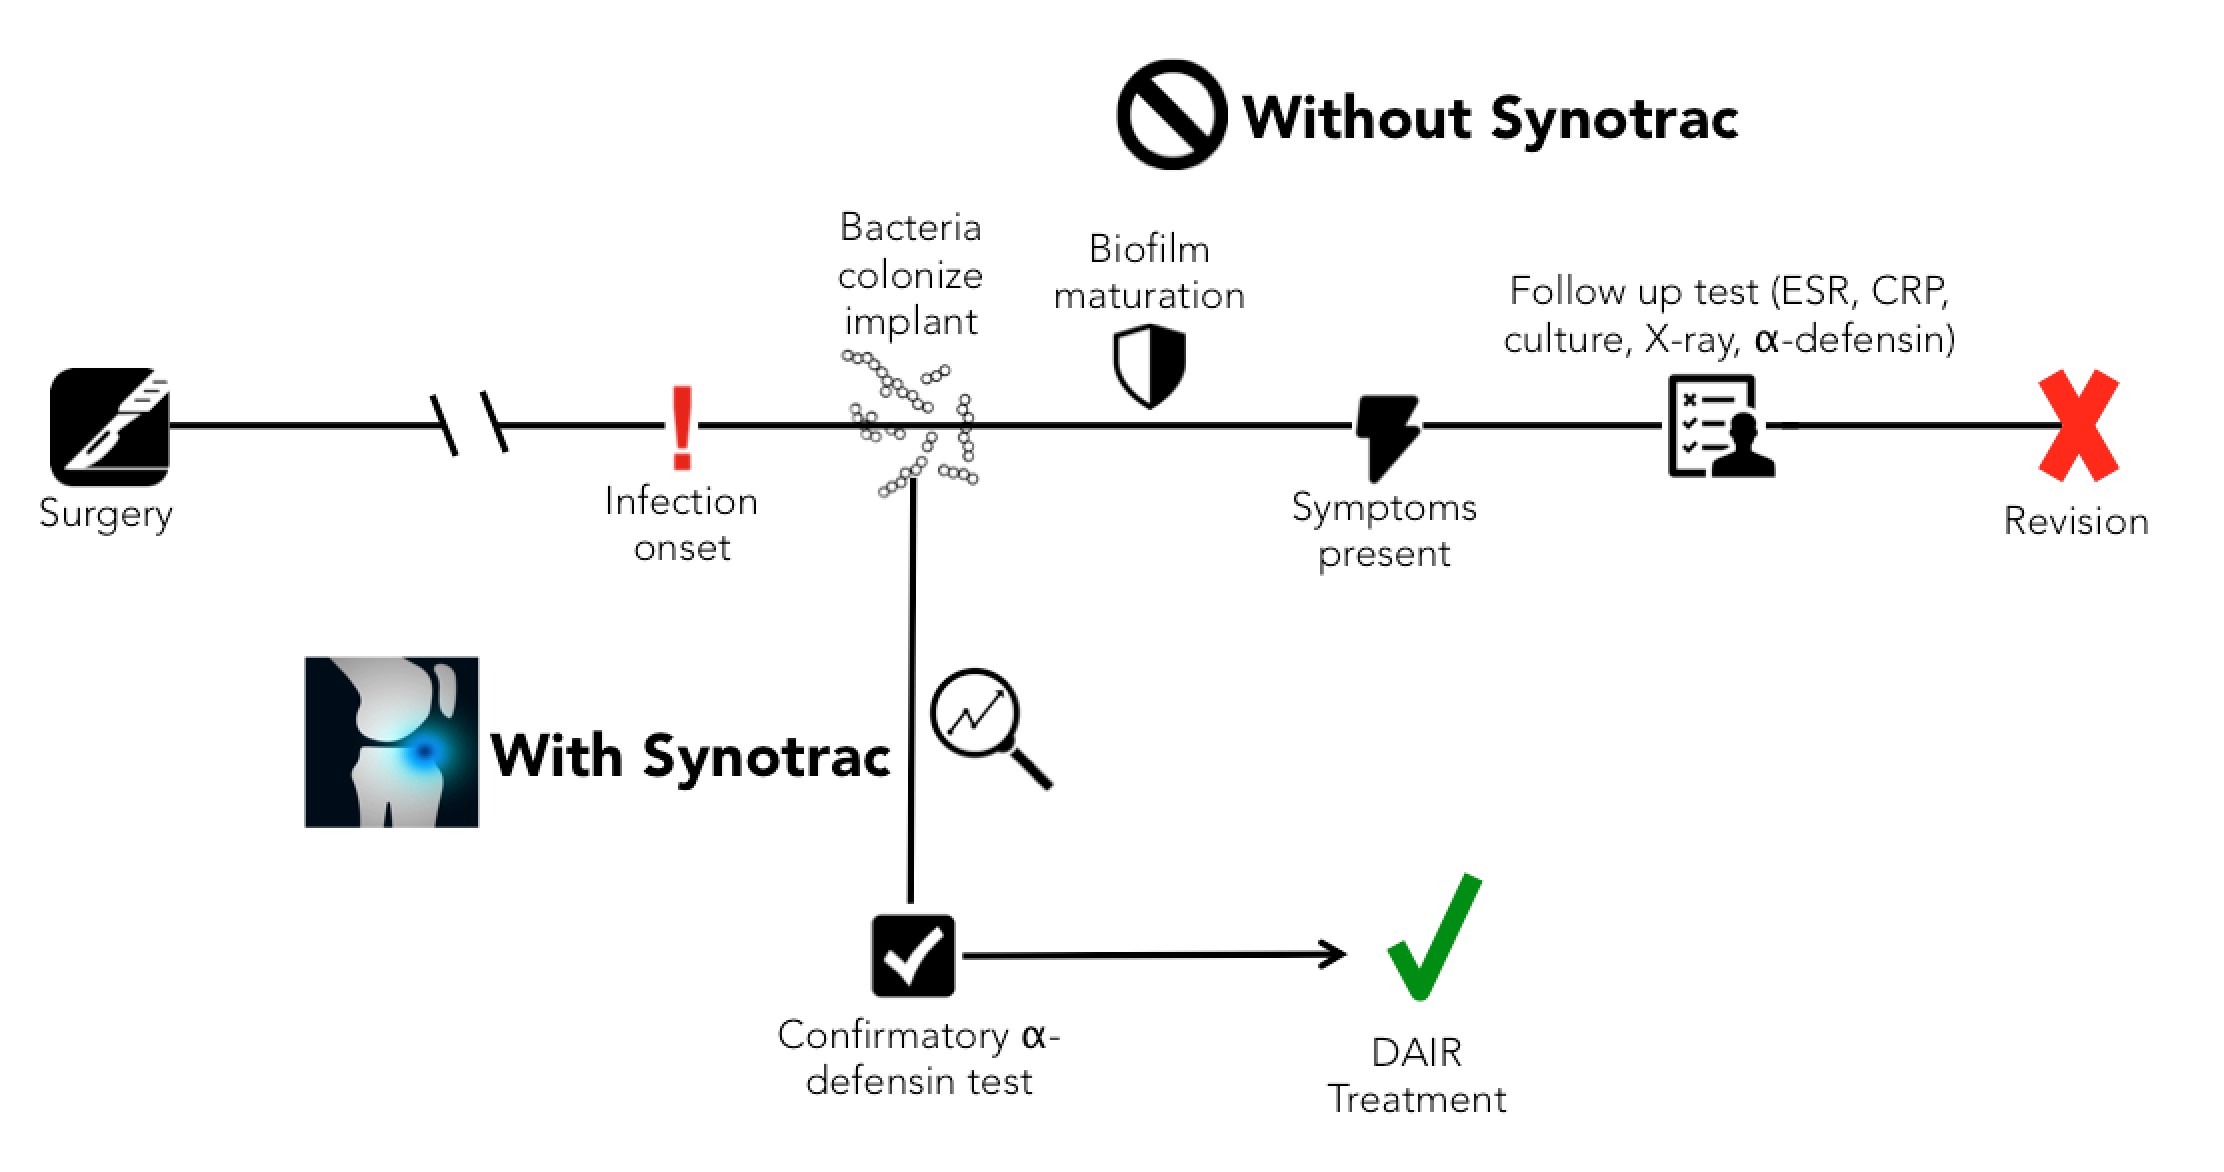 timeline of infection with and without synotrac